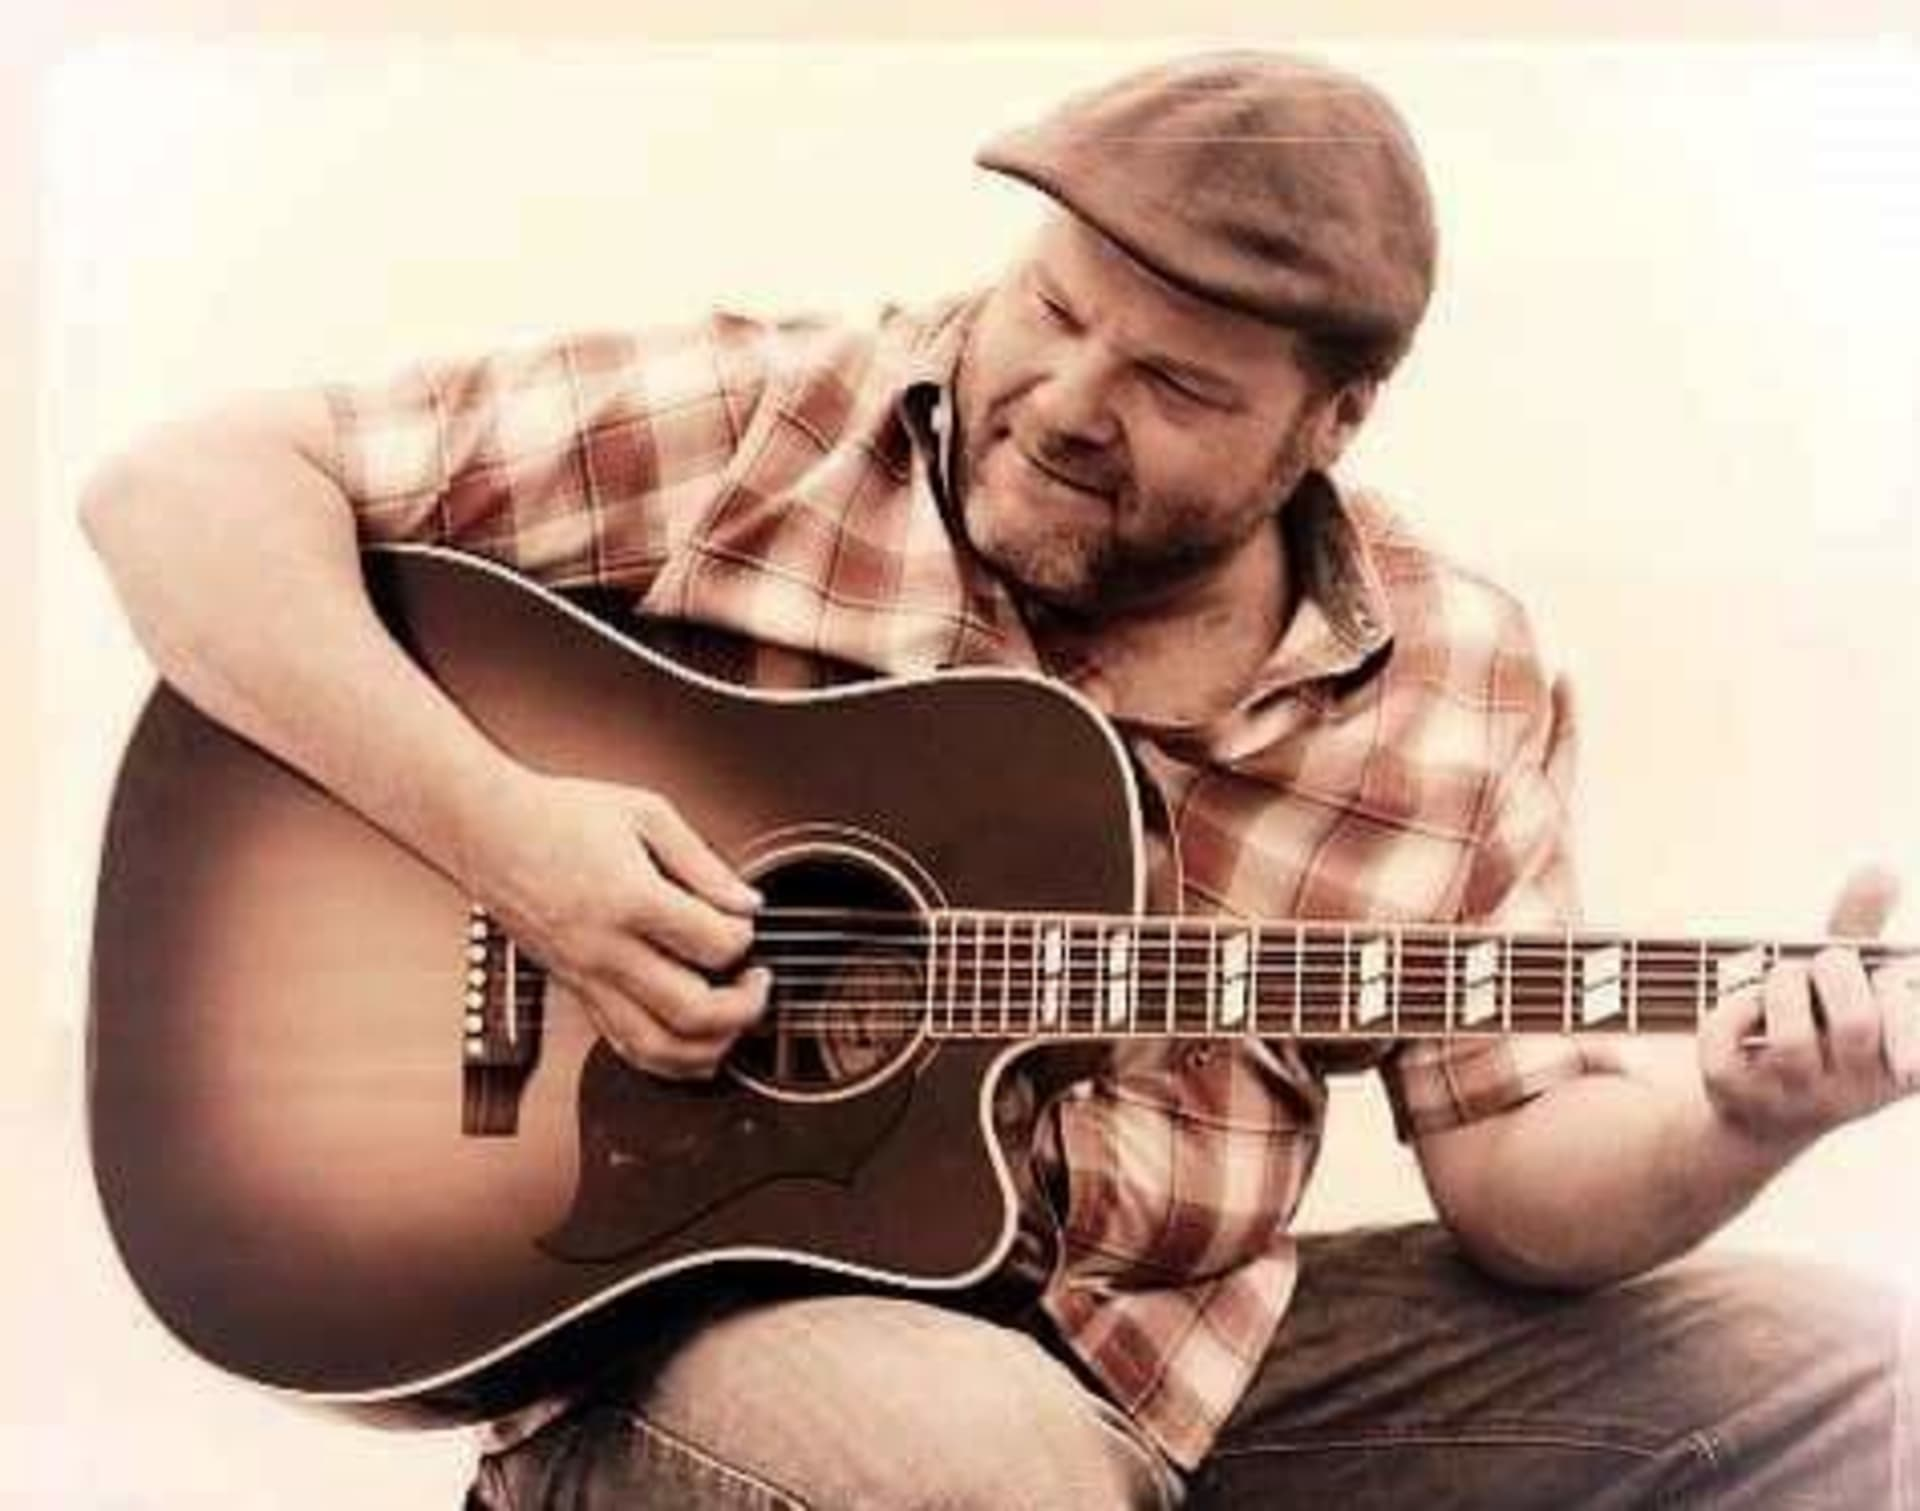 Saturday, January 26th ~ Live music with Leroy